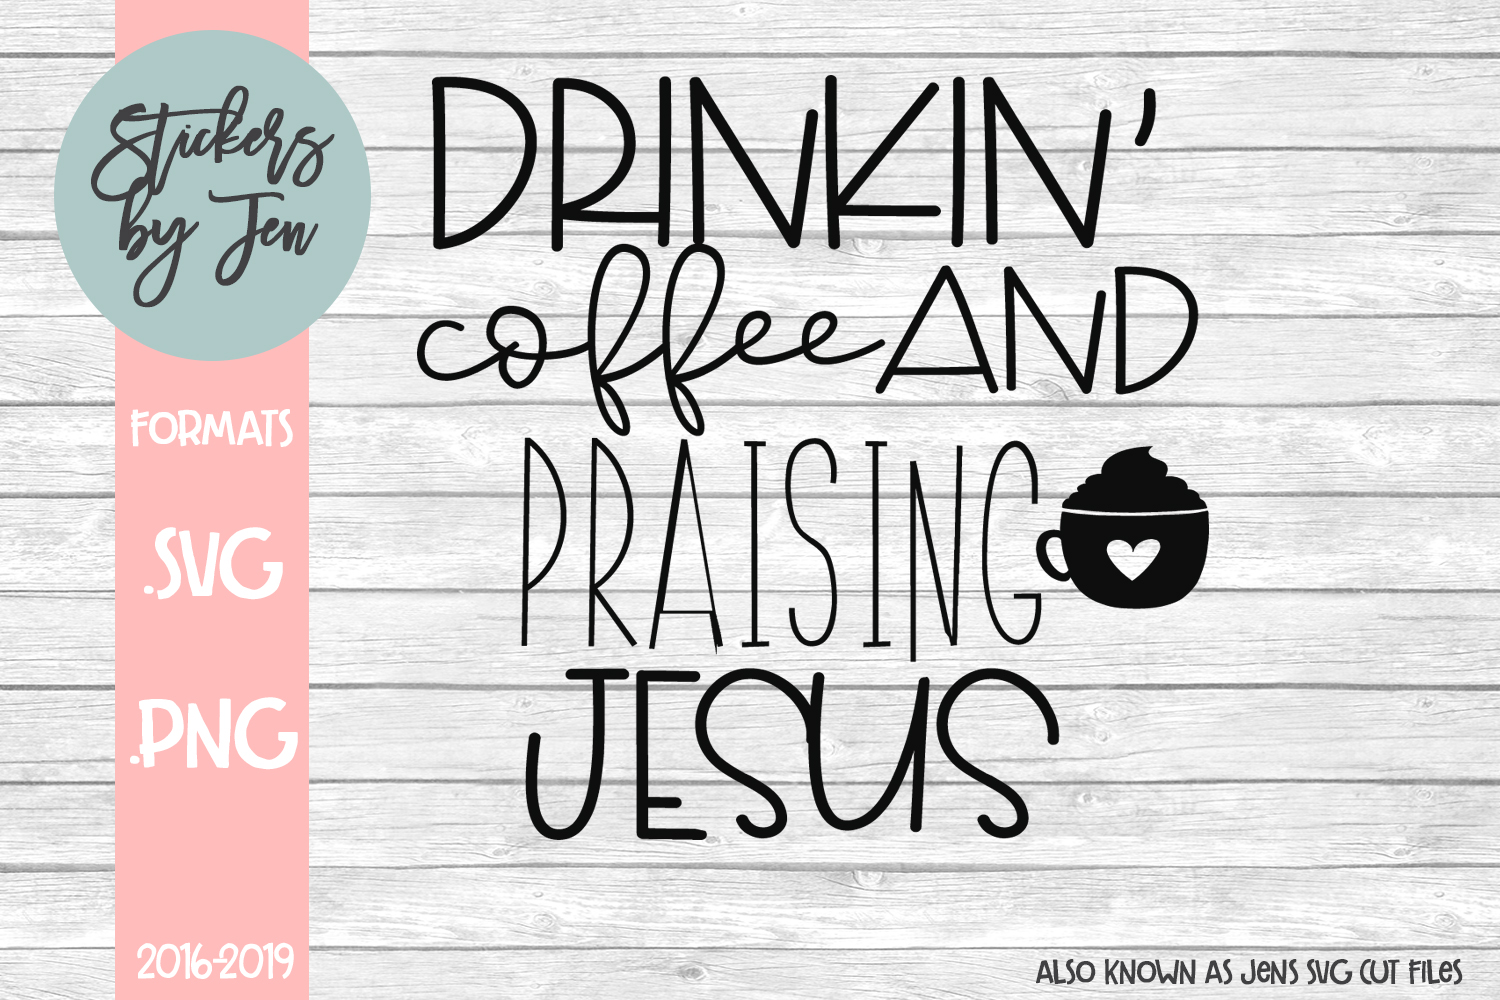 Drinkin Coffee And Praising Jesus Svg Graphic By Stickers By